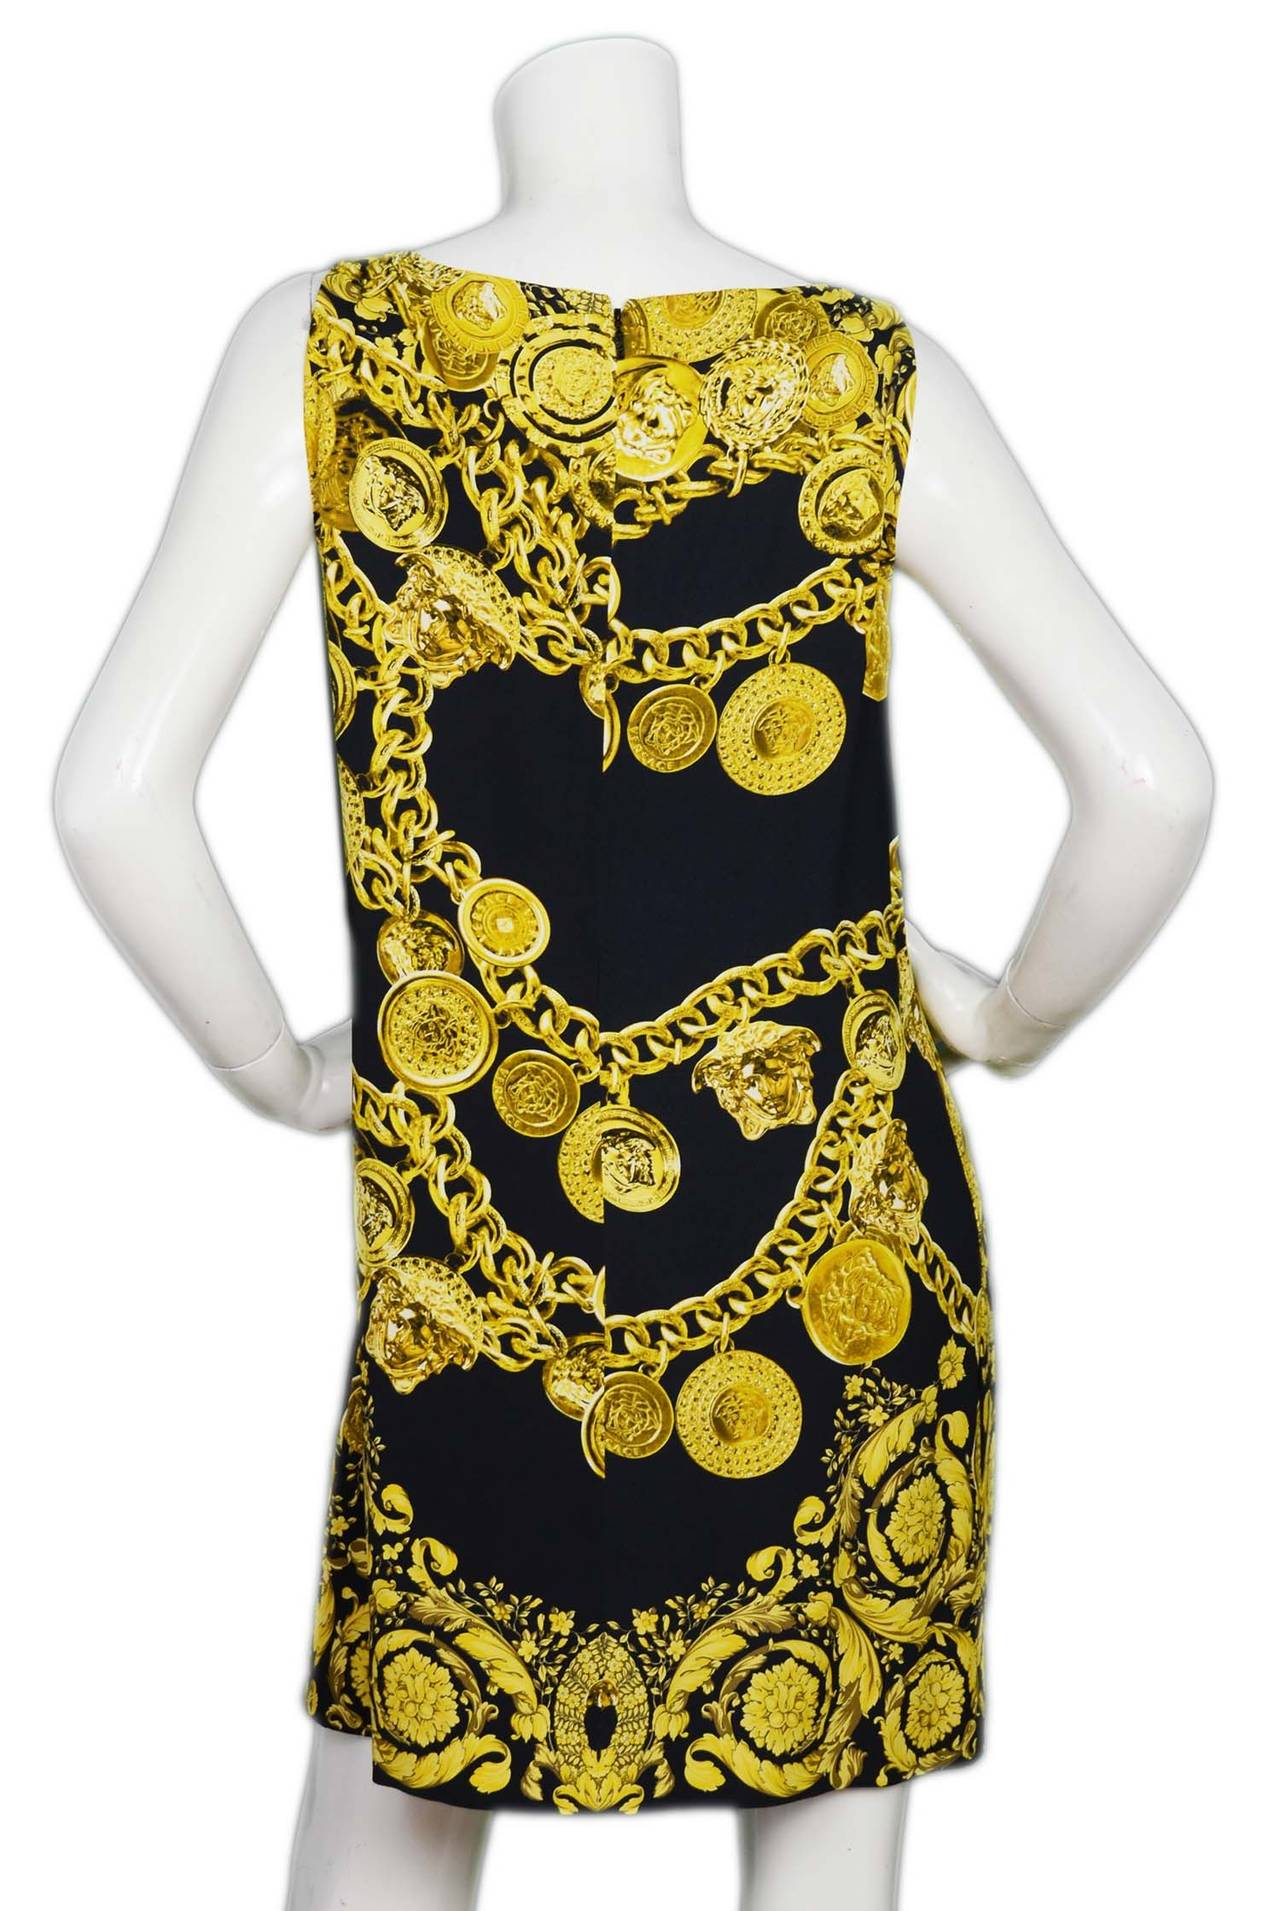 versace 2014 black and gold medusa medallion chain print